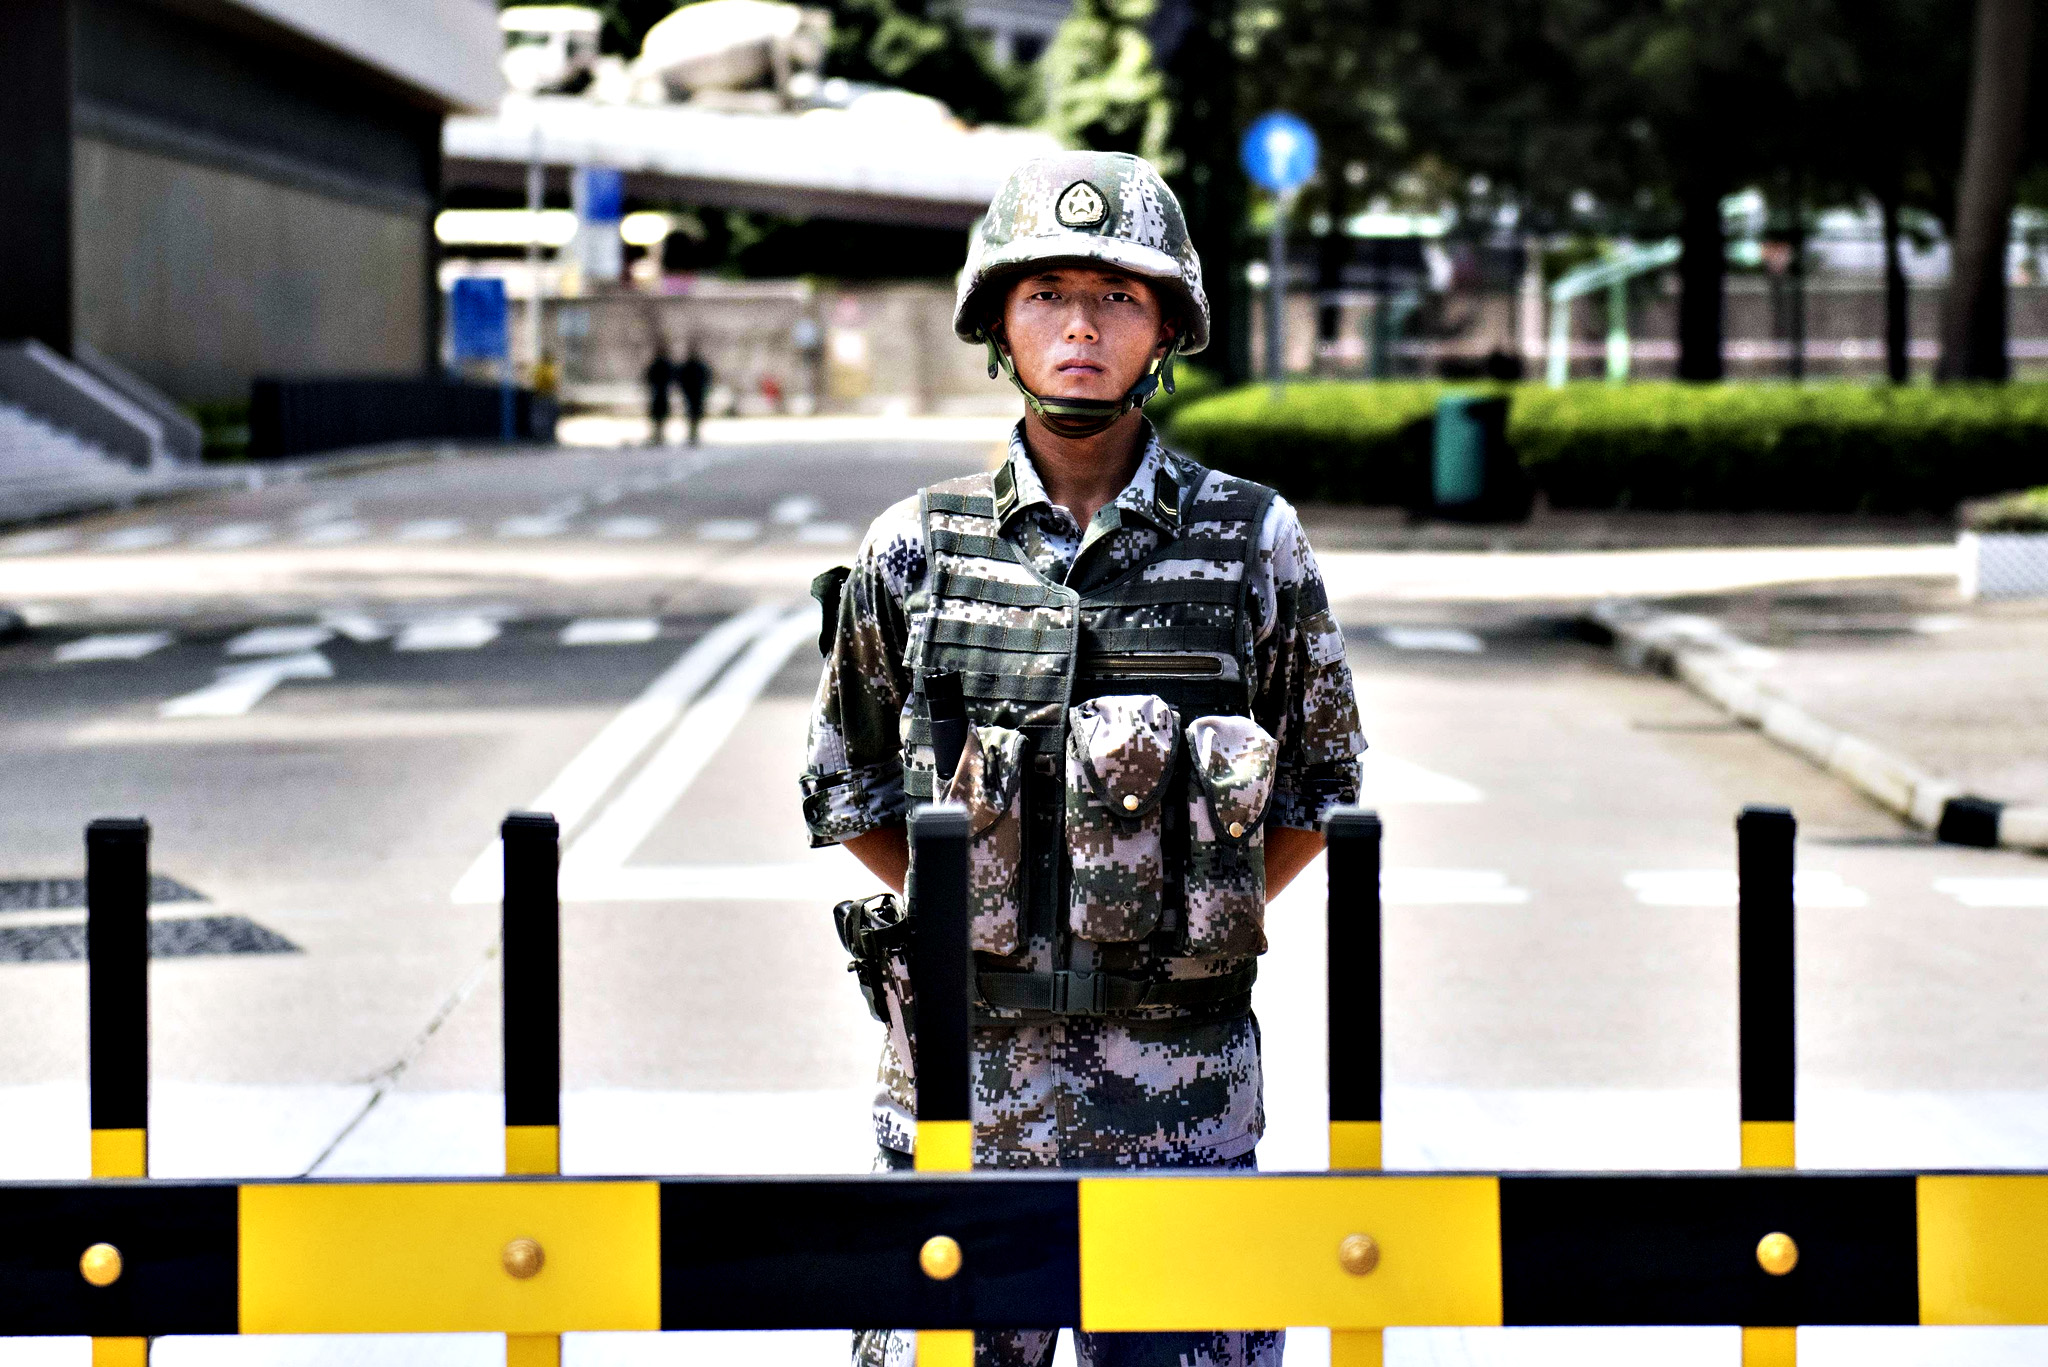 "A Chinese People's Liberation Army (PLA)...A Chinese People's Liberation Army (PLA) soldier stands guard at the entrance to the PLA's Hong Kong Garrison headquarters in Hong Kong on August 29, 2014.  Hong Kong residents expressed alarm on August 29 after Chinese army vehicles were photographed travelling down a major thoroughfare, in what democracy activists condemned as a show of ""military might"" ahead of expected protests."